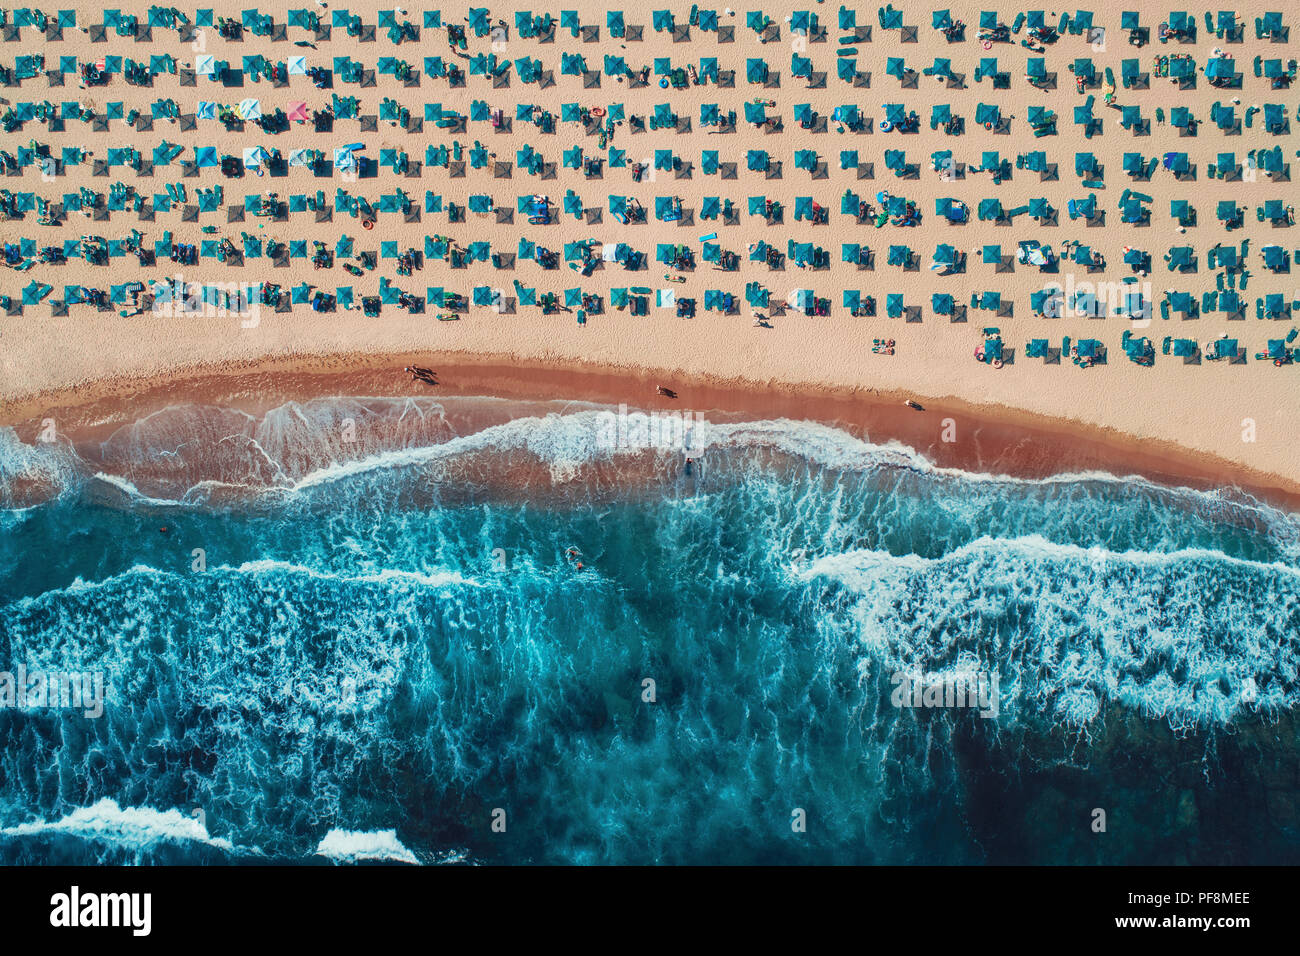 Aerial top view on the beach. Umbrellas, sand and sea waves - Stock Image